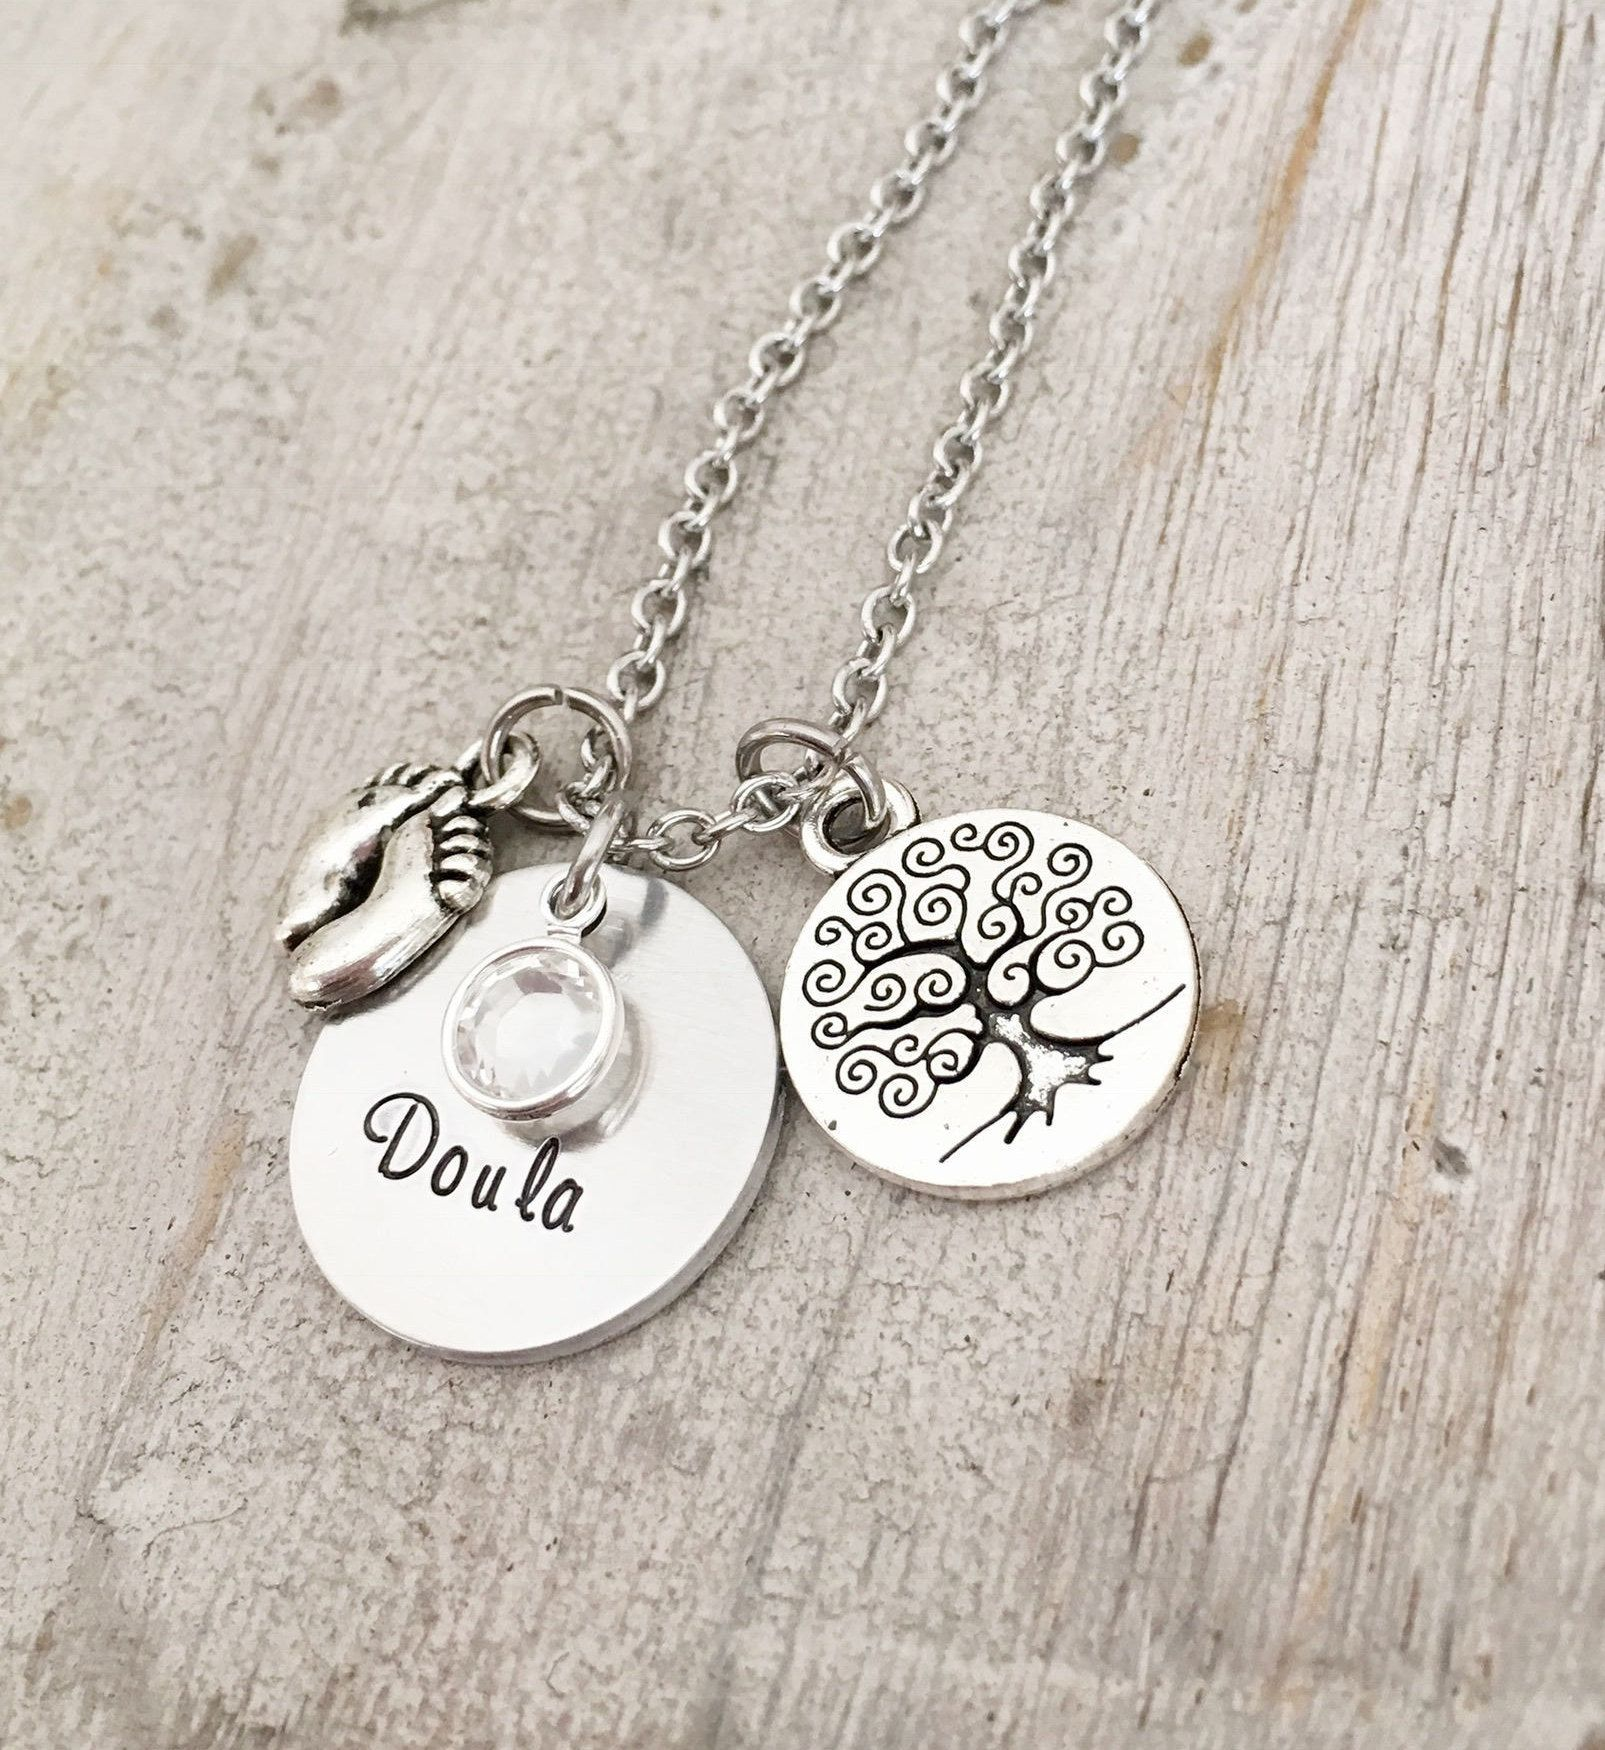 Doula jewelry doula thank you gift doula necklace gift birth doula jewelry doula thank you gift doula necklace gift birth doula jewelry aiddatafo Image collections